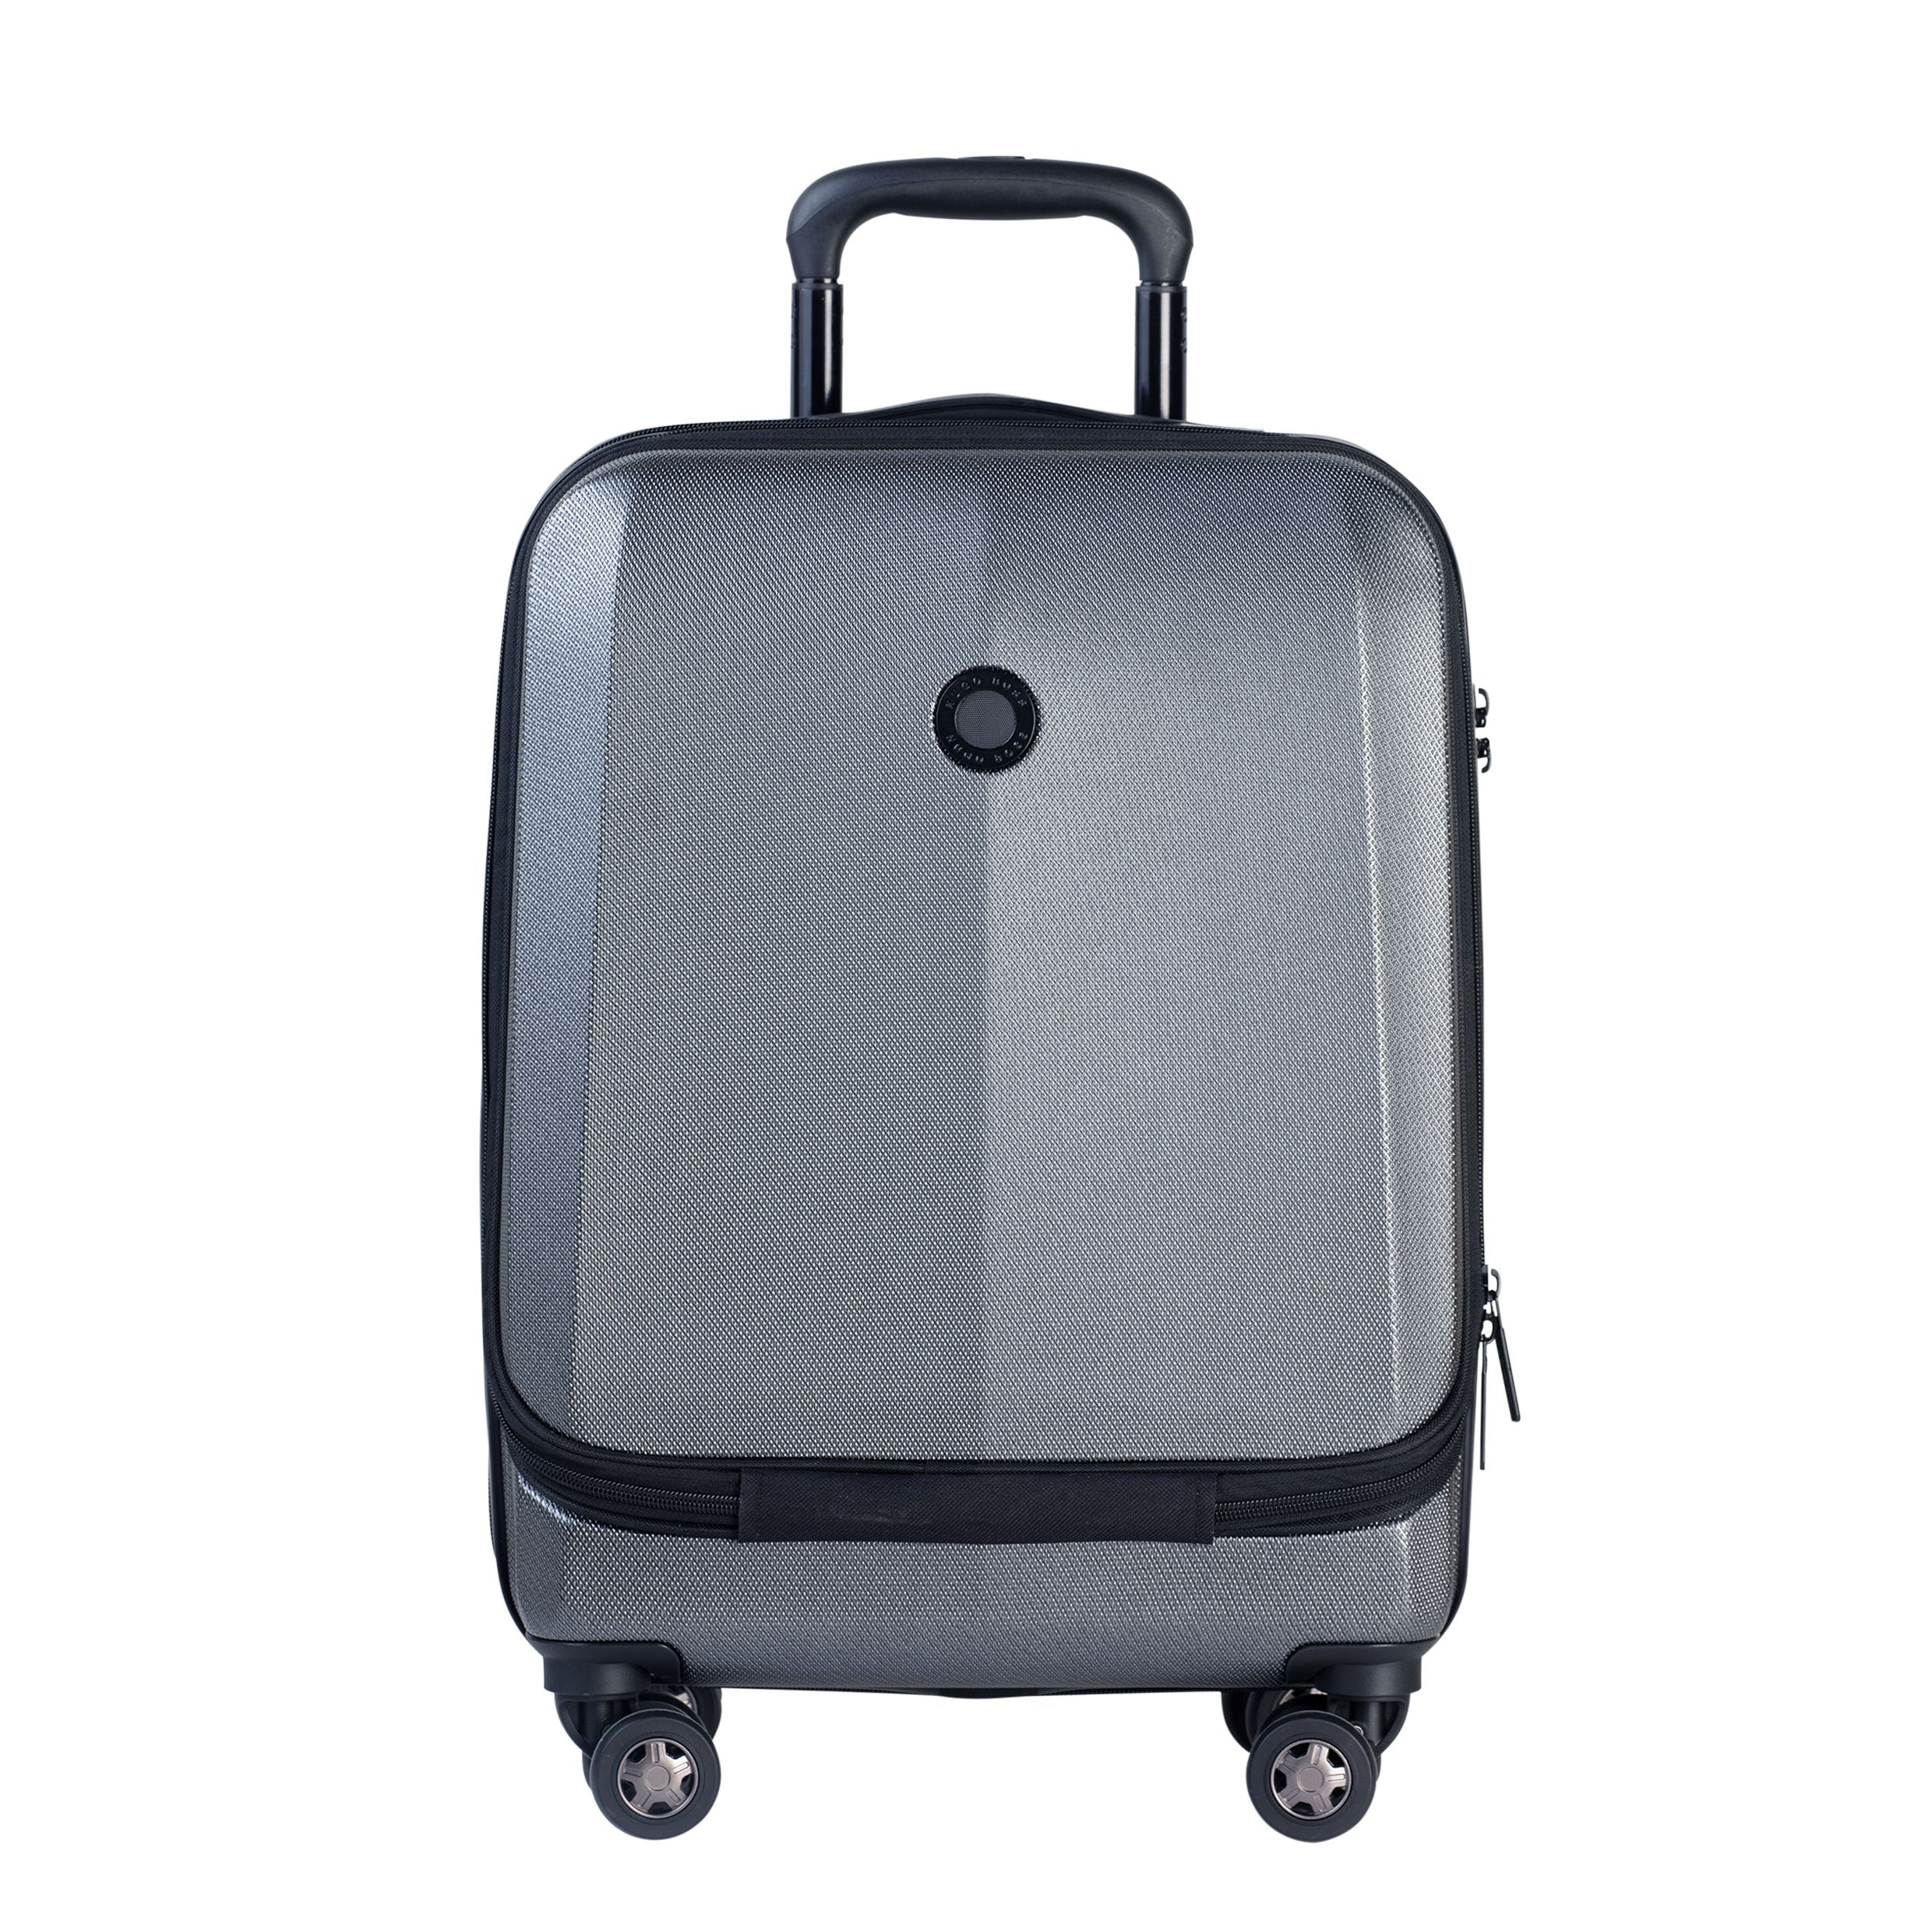 Hugo Boss Trolley Gleam with laptop compartment